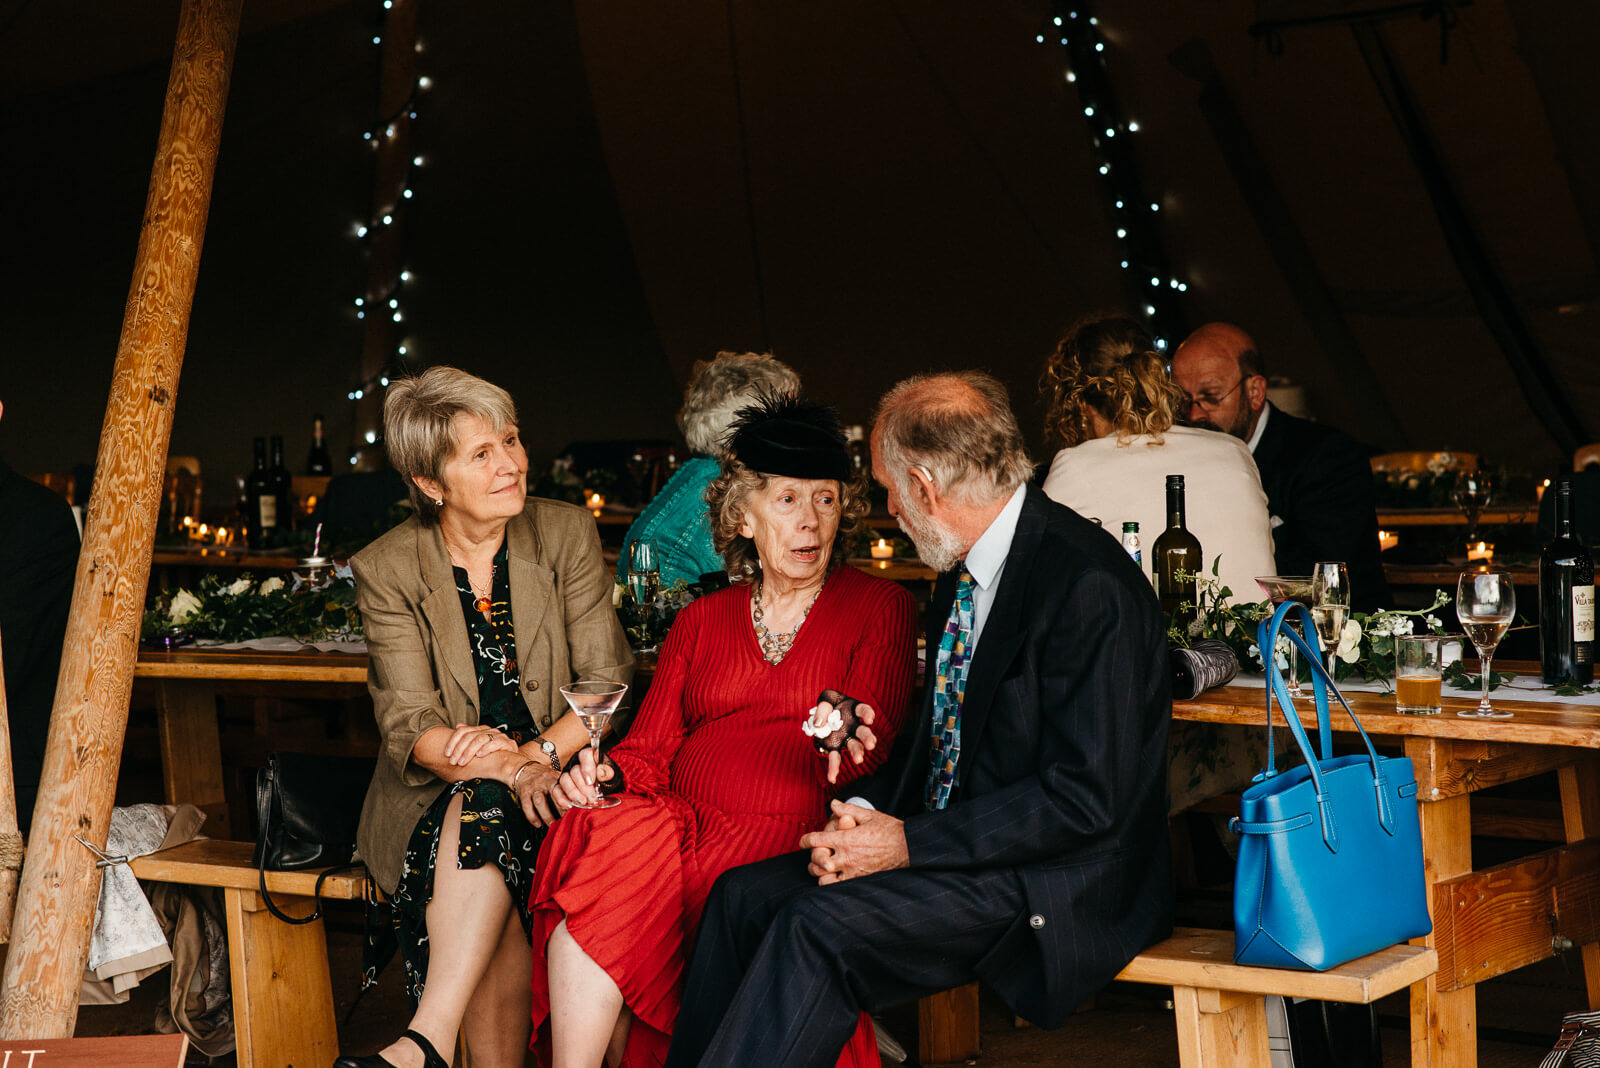 Guests chatting at tipi wedding in Shropshire